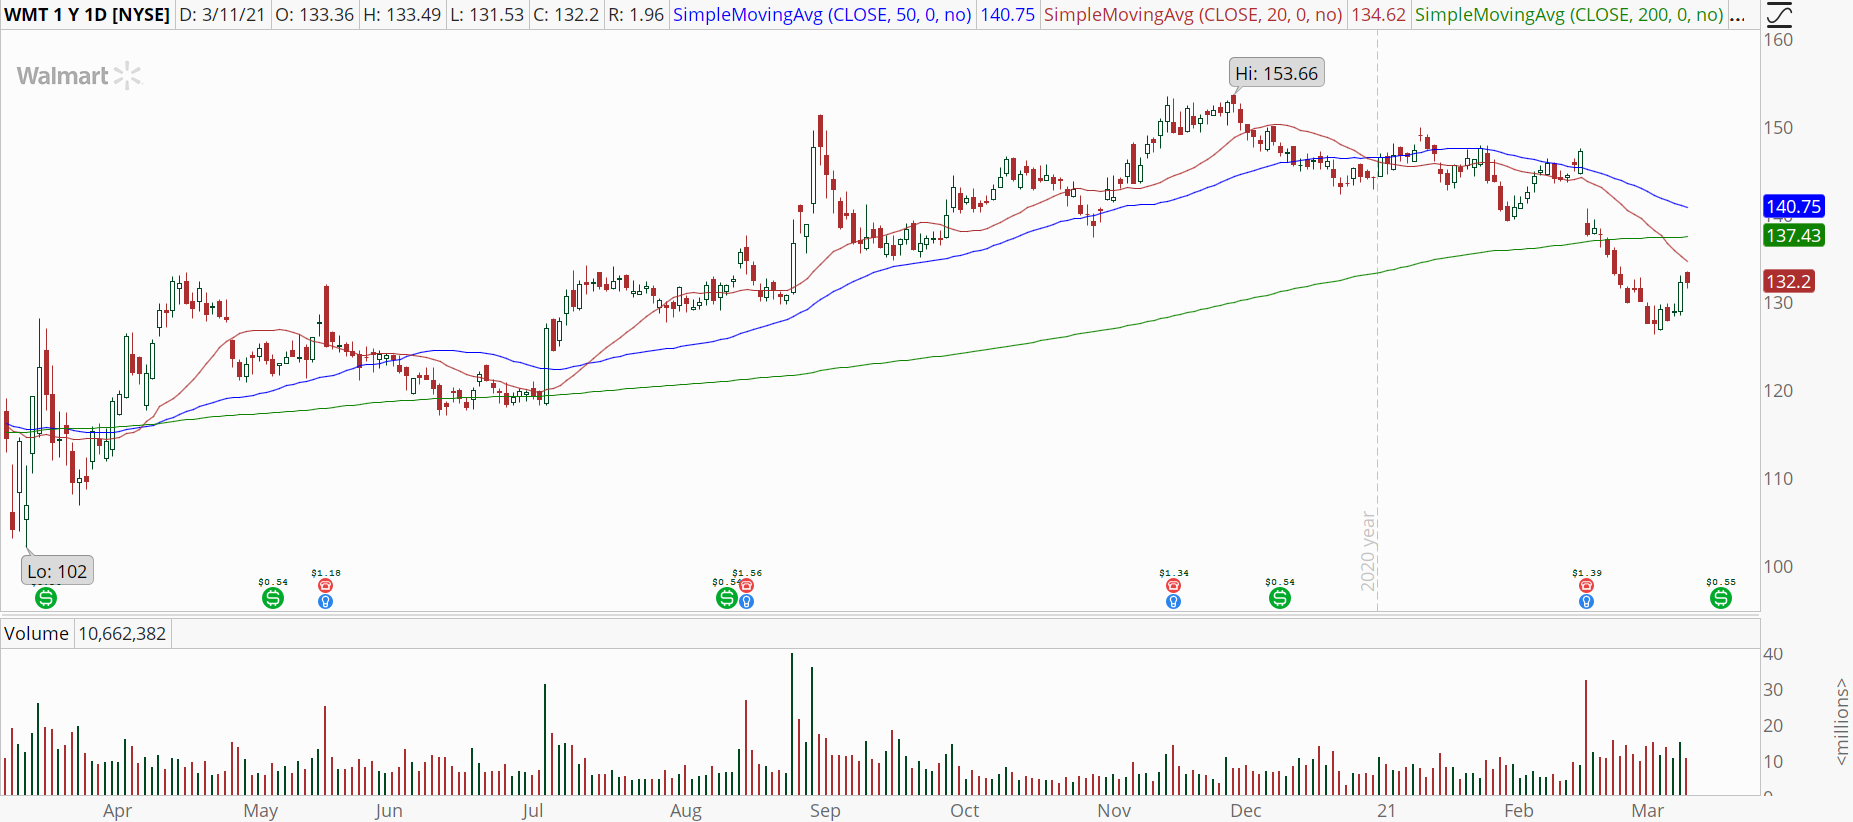 Walmart (WMT) stock daily chart with downtrend